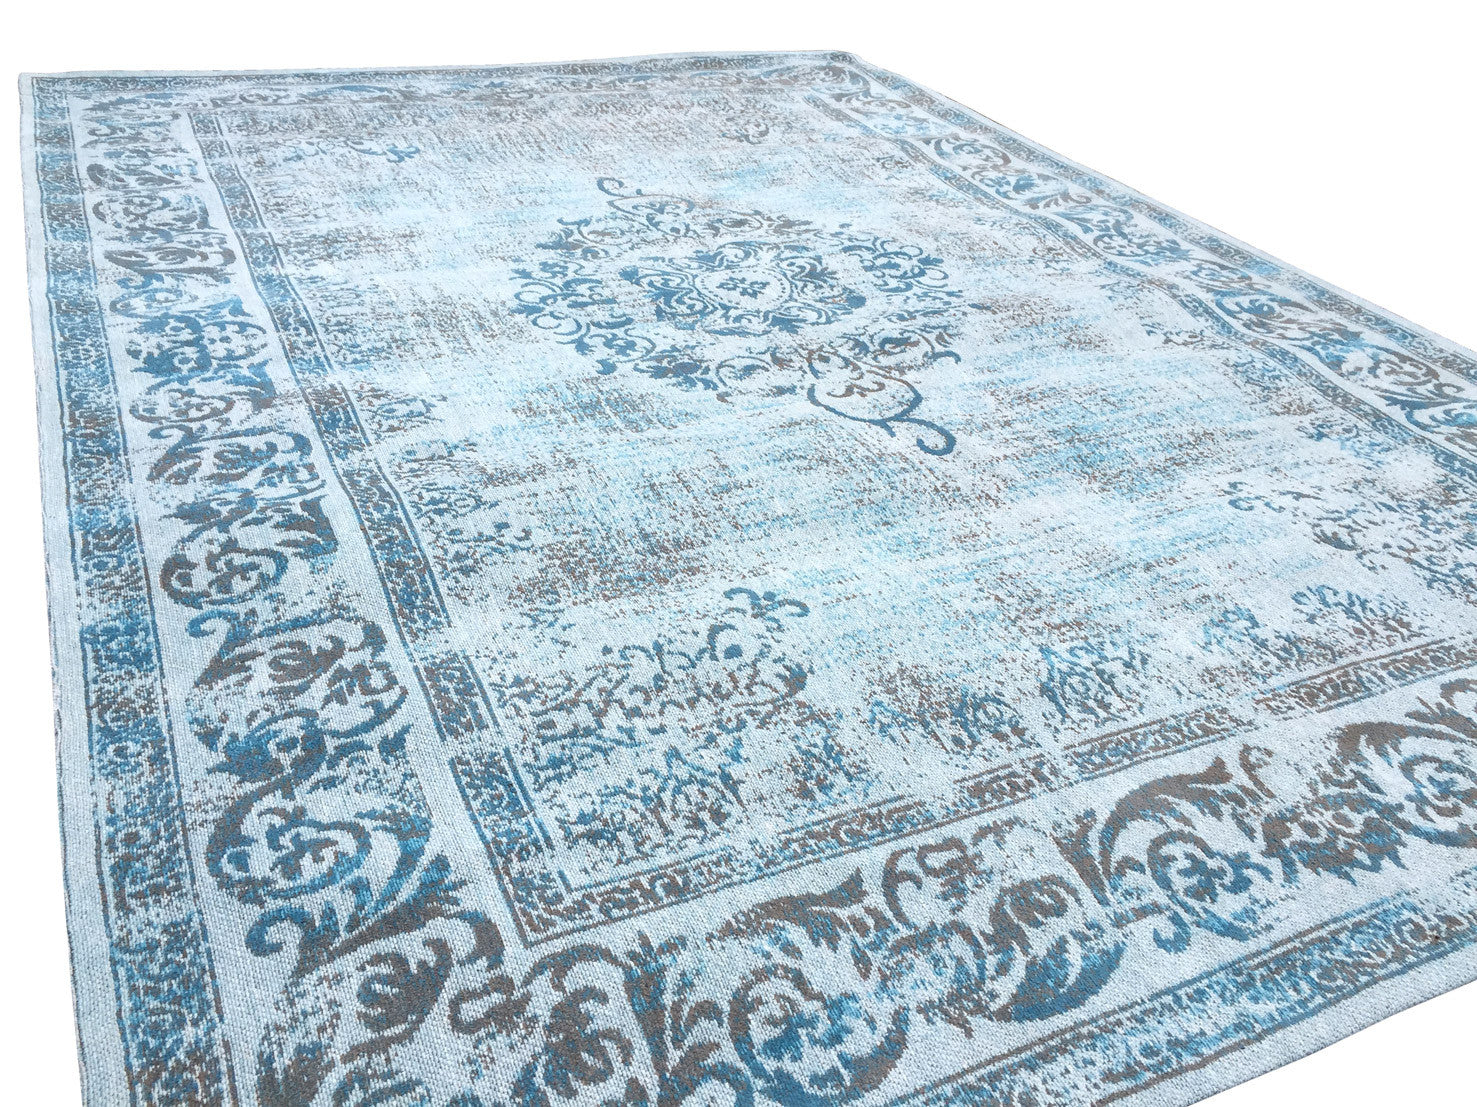 Vintage Azur Blue Rug - greendecore.co.uk - 6